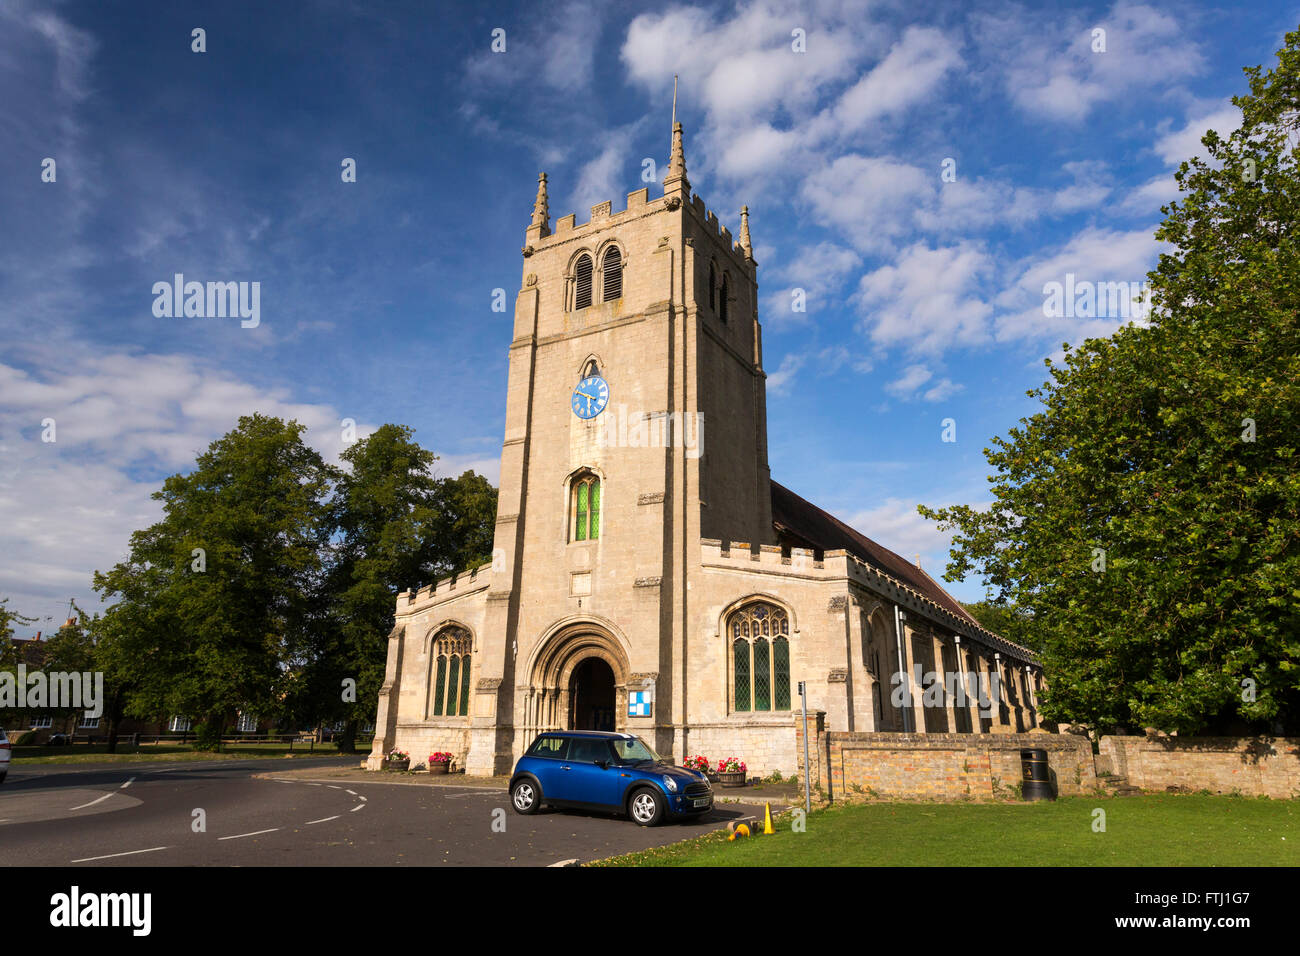 St Thomas a Becket parish church in Ramsey, Cambridgeshire, UK - Stock Image